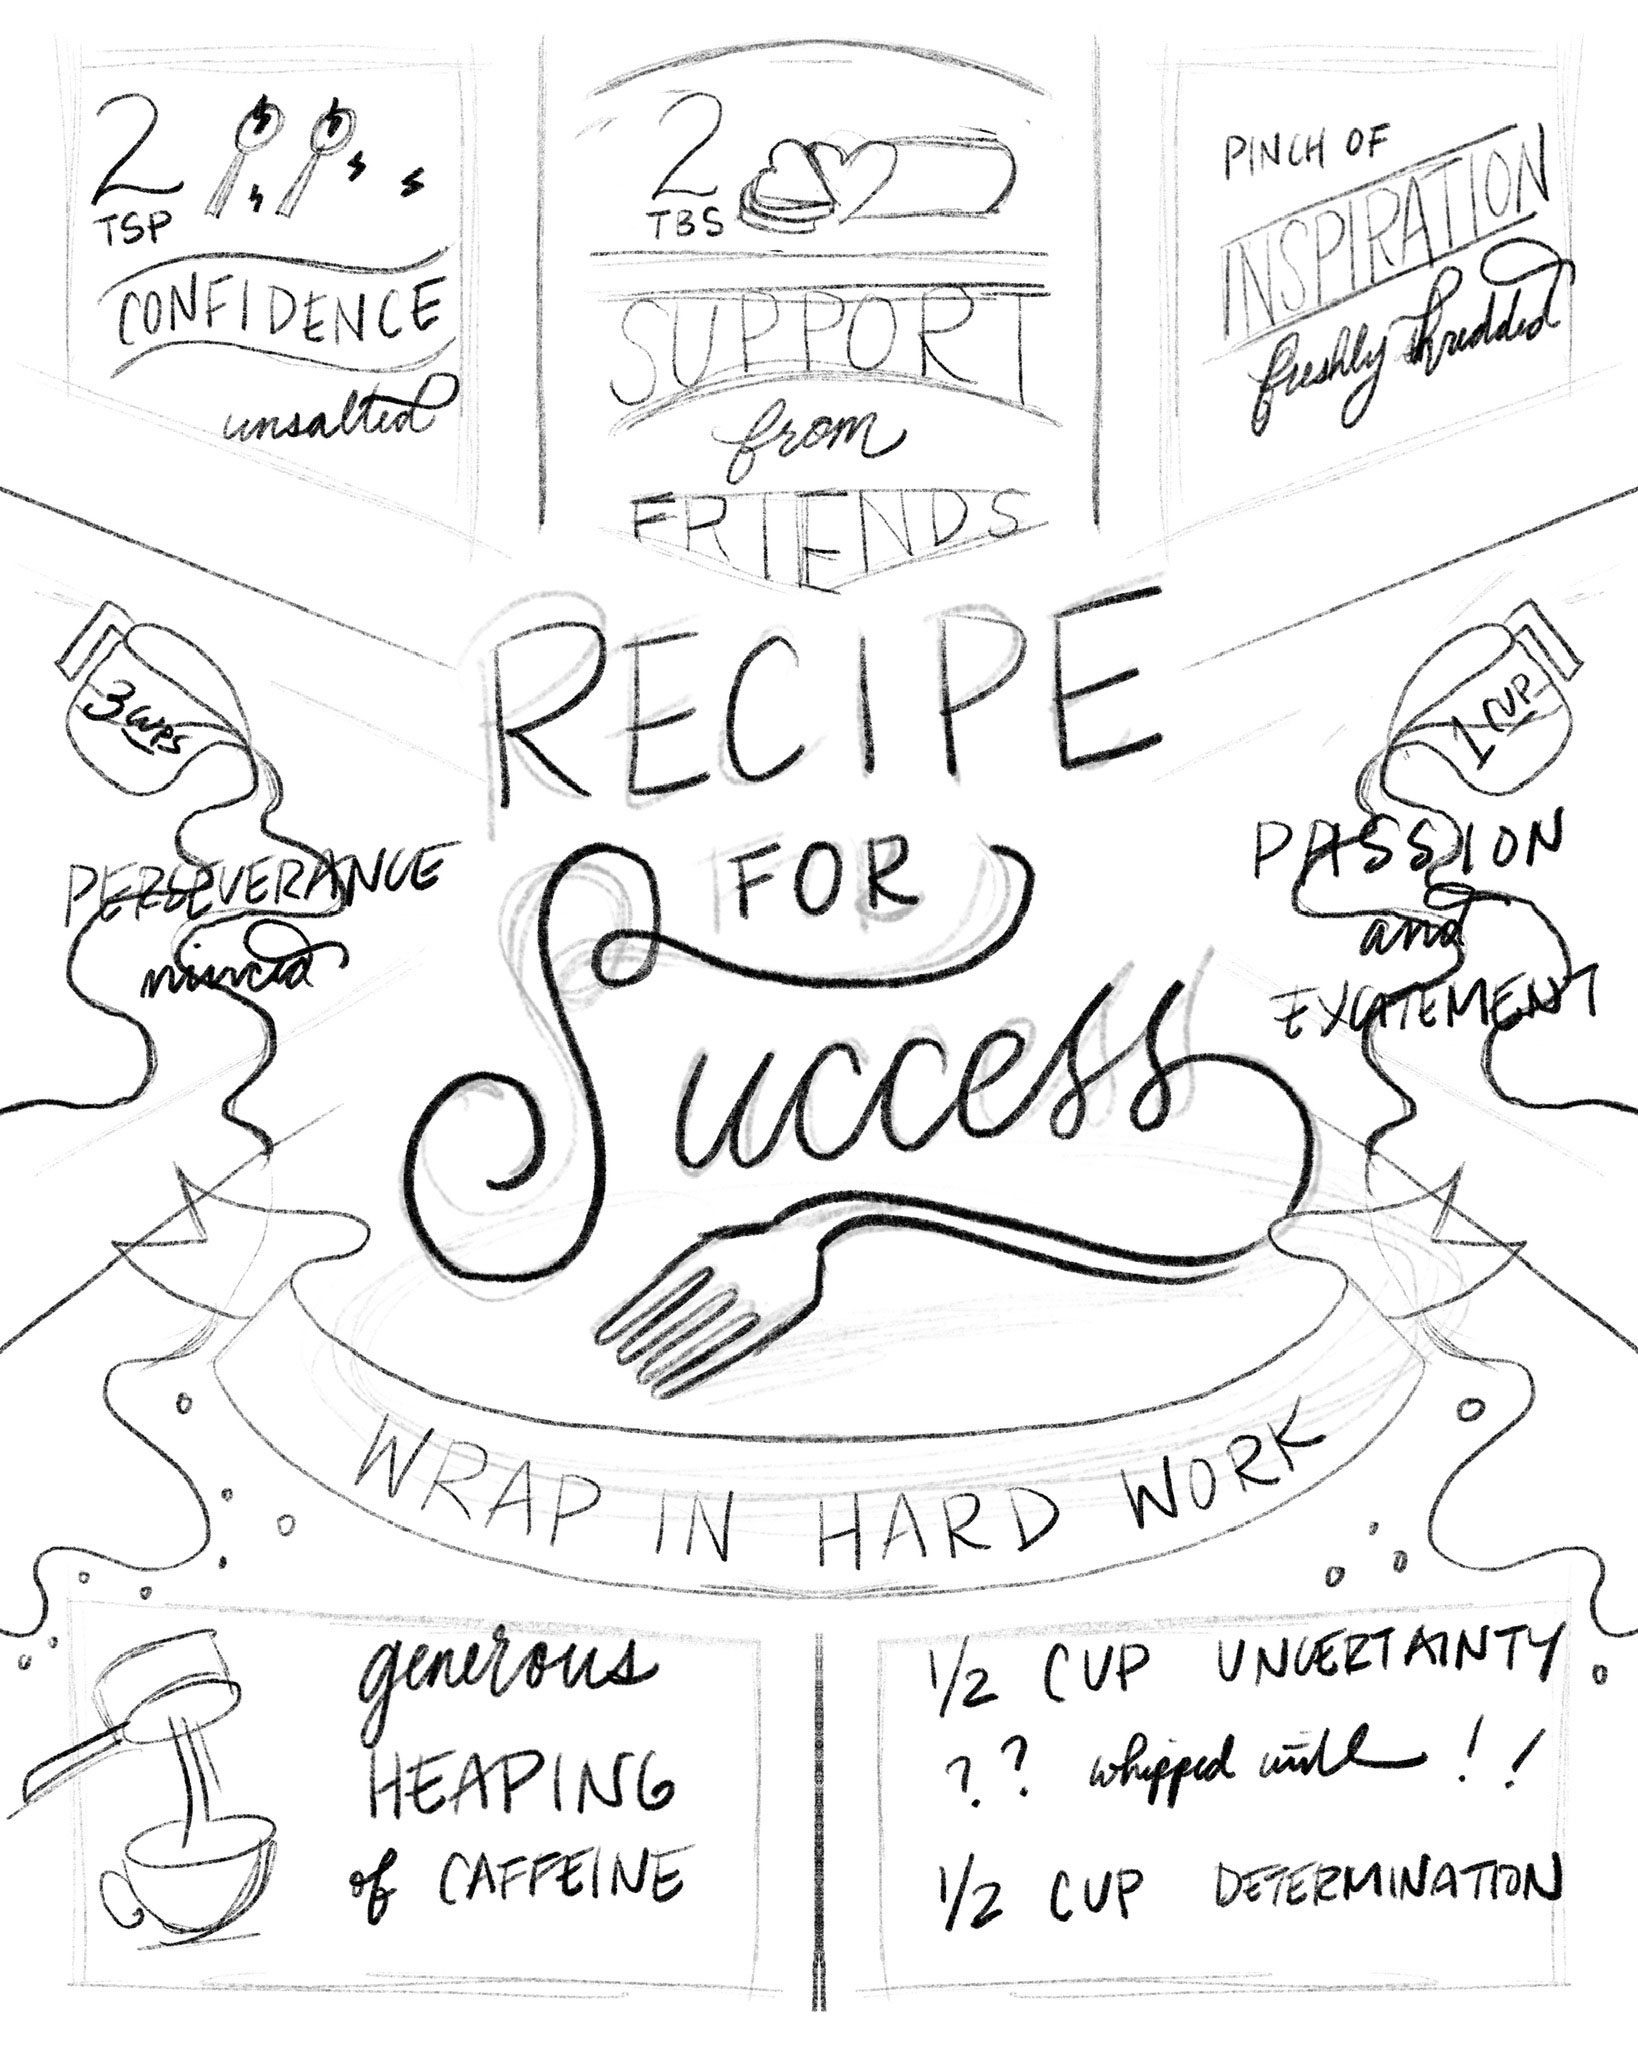 recipe-for-sucess-sketch.JPG